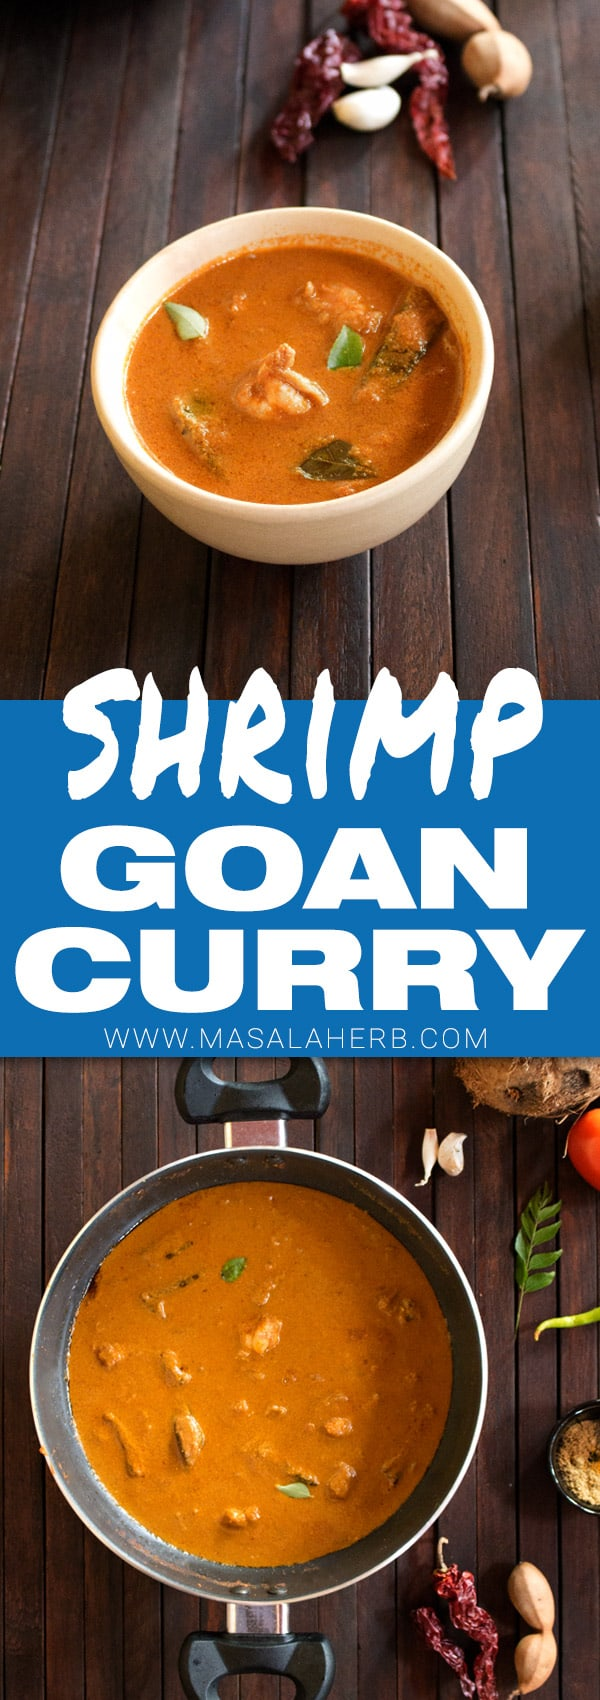 Goan Shrimp Curry - How to make goan shrimp/prawn curry recipe  with video www.MasalaHerb.com #indianfood